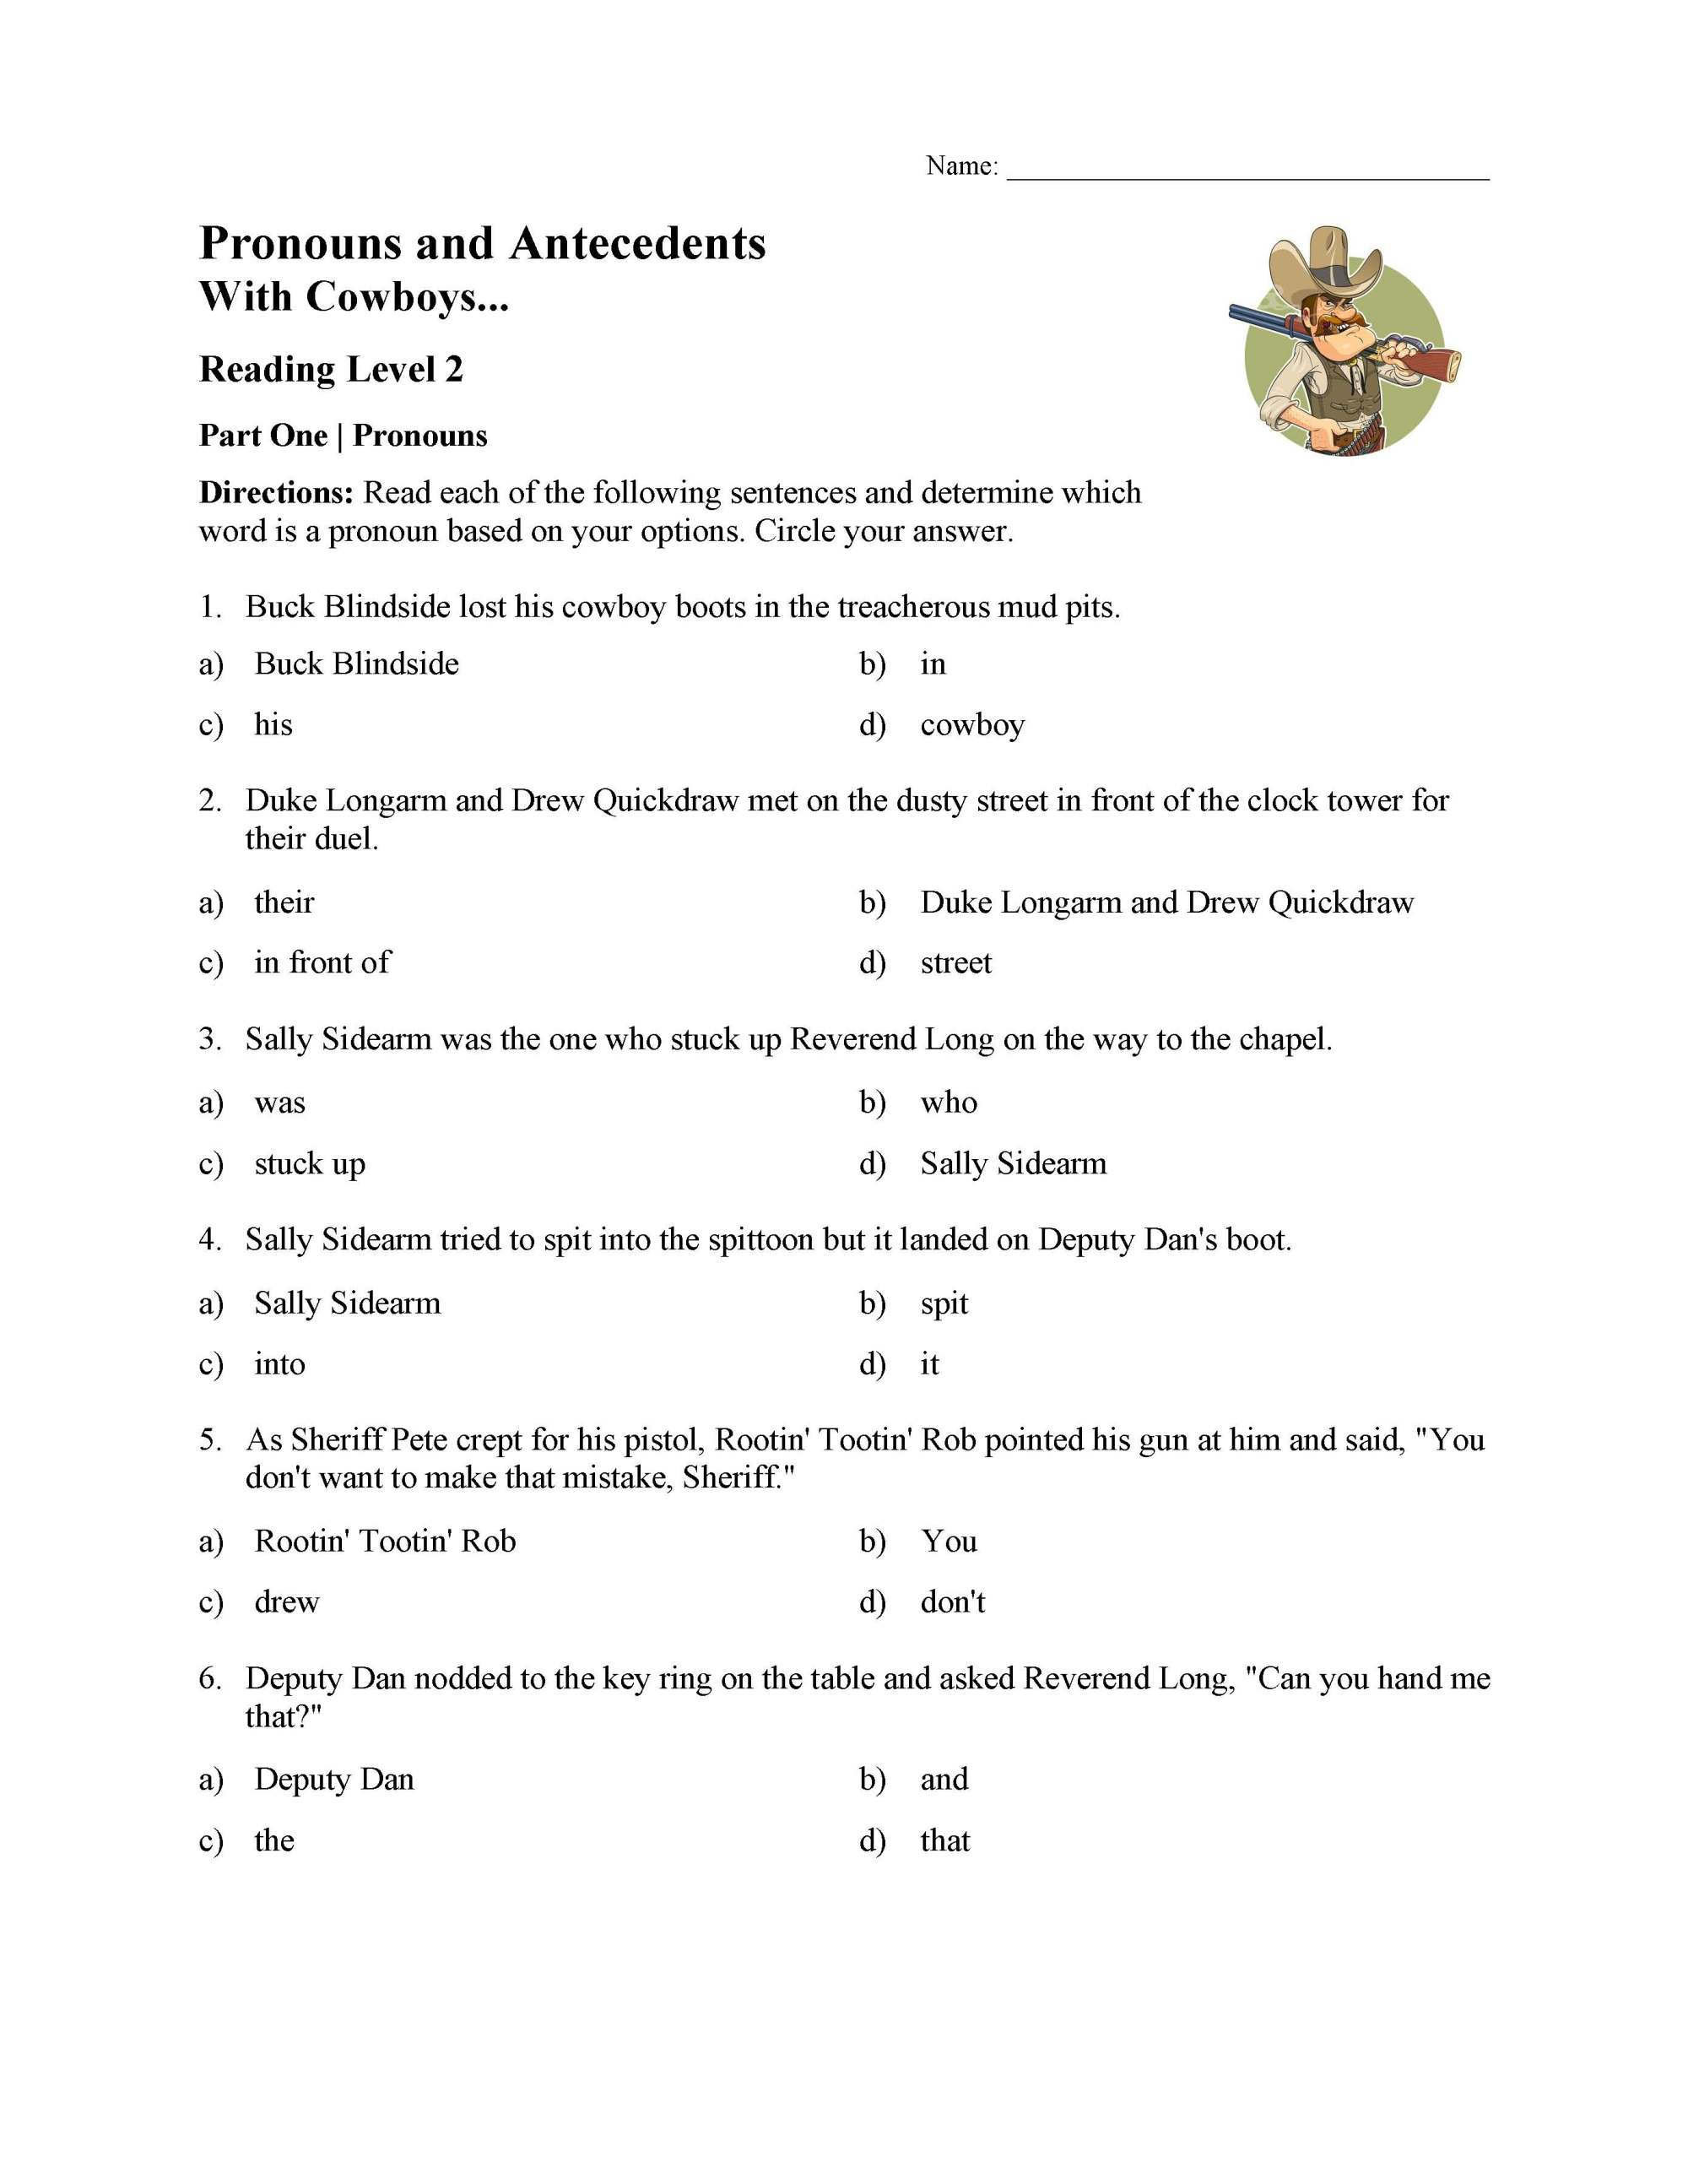 hight resolution of Pronoun and Antecedent Test - With Cowboys   Reading Level 2   Preview